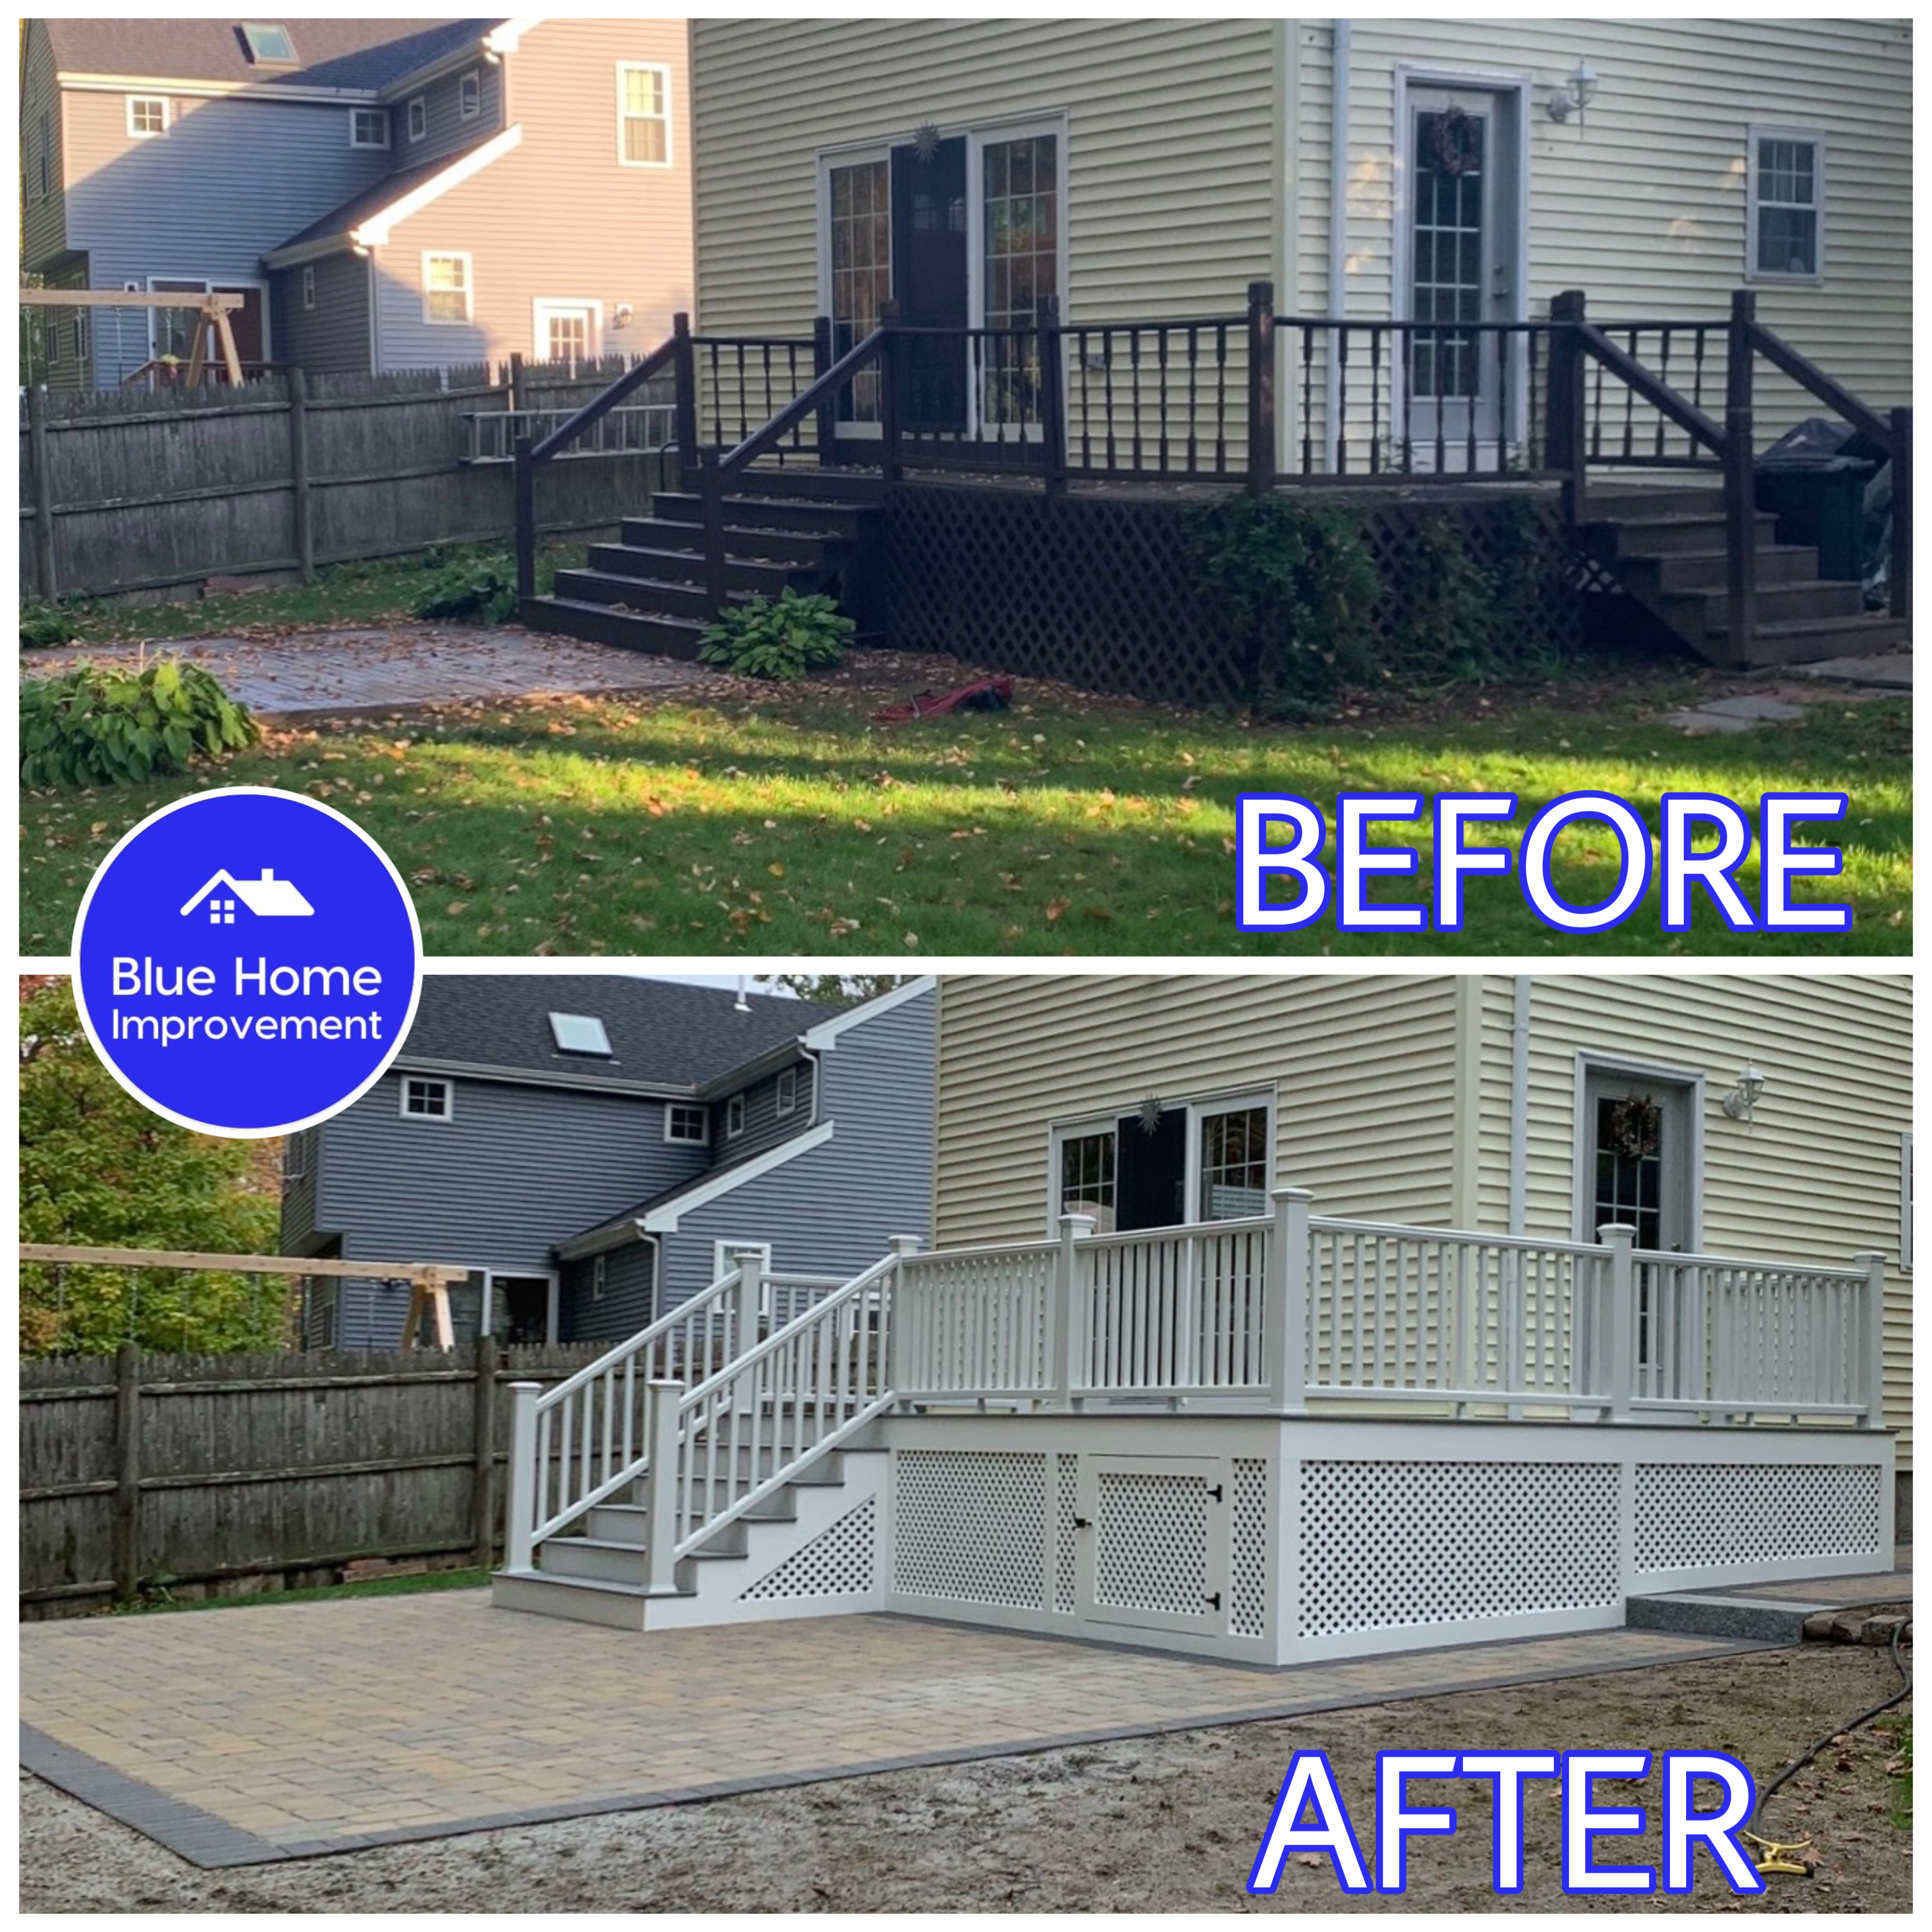 Beautiful New Deck Remodel and Patio Installation in Natick, MA